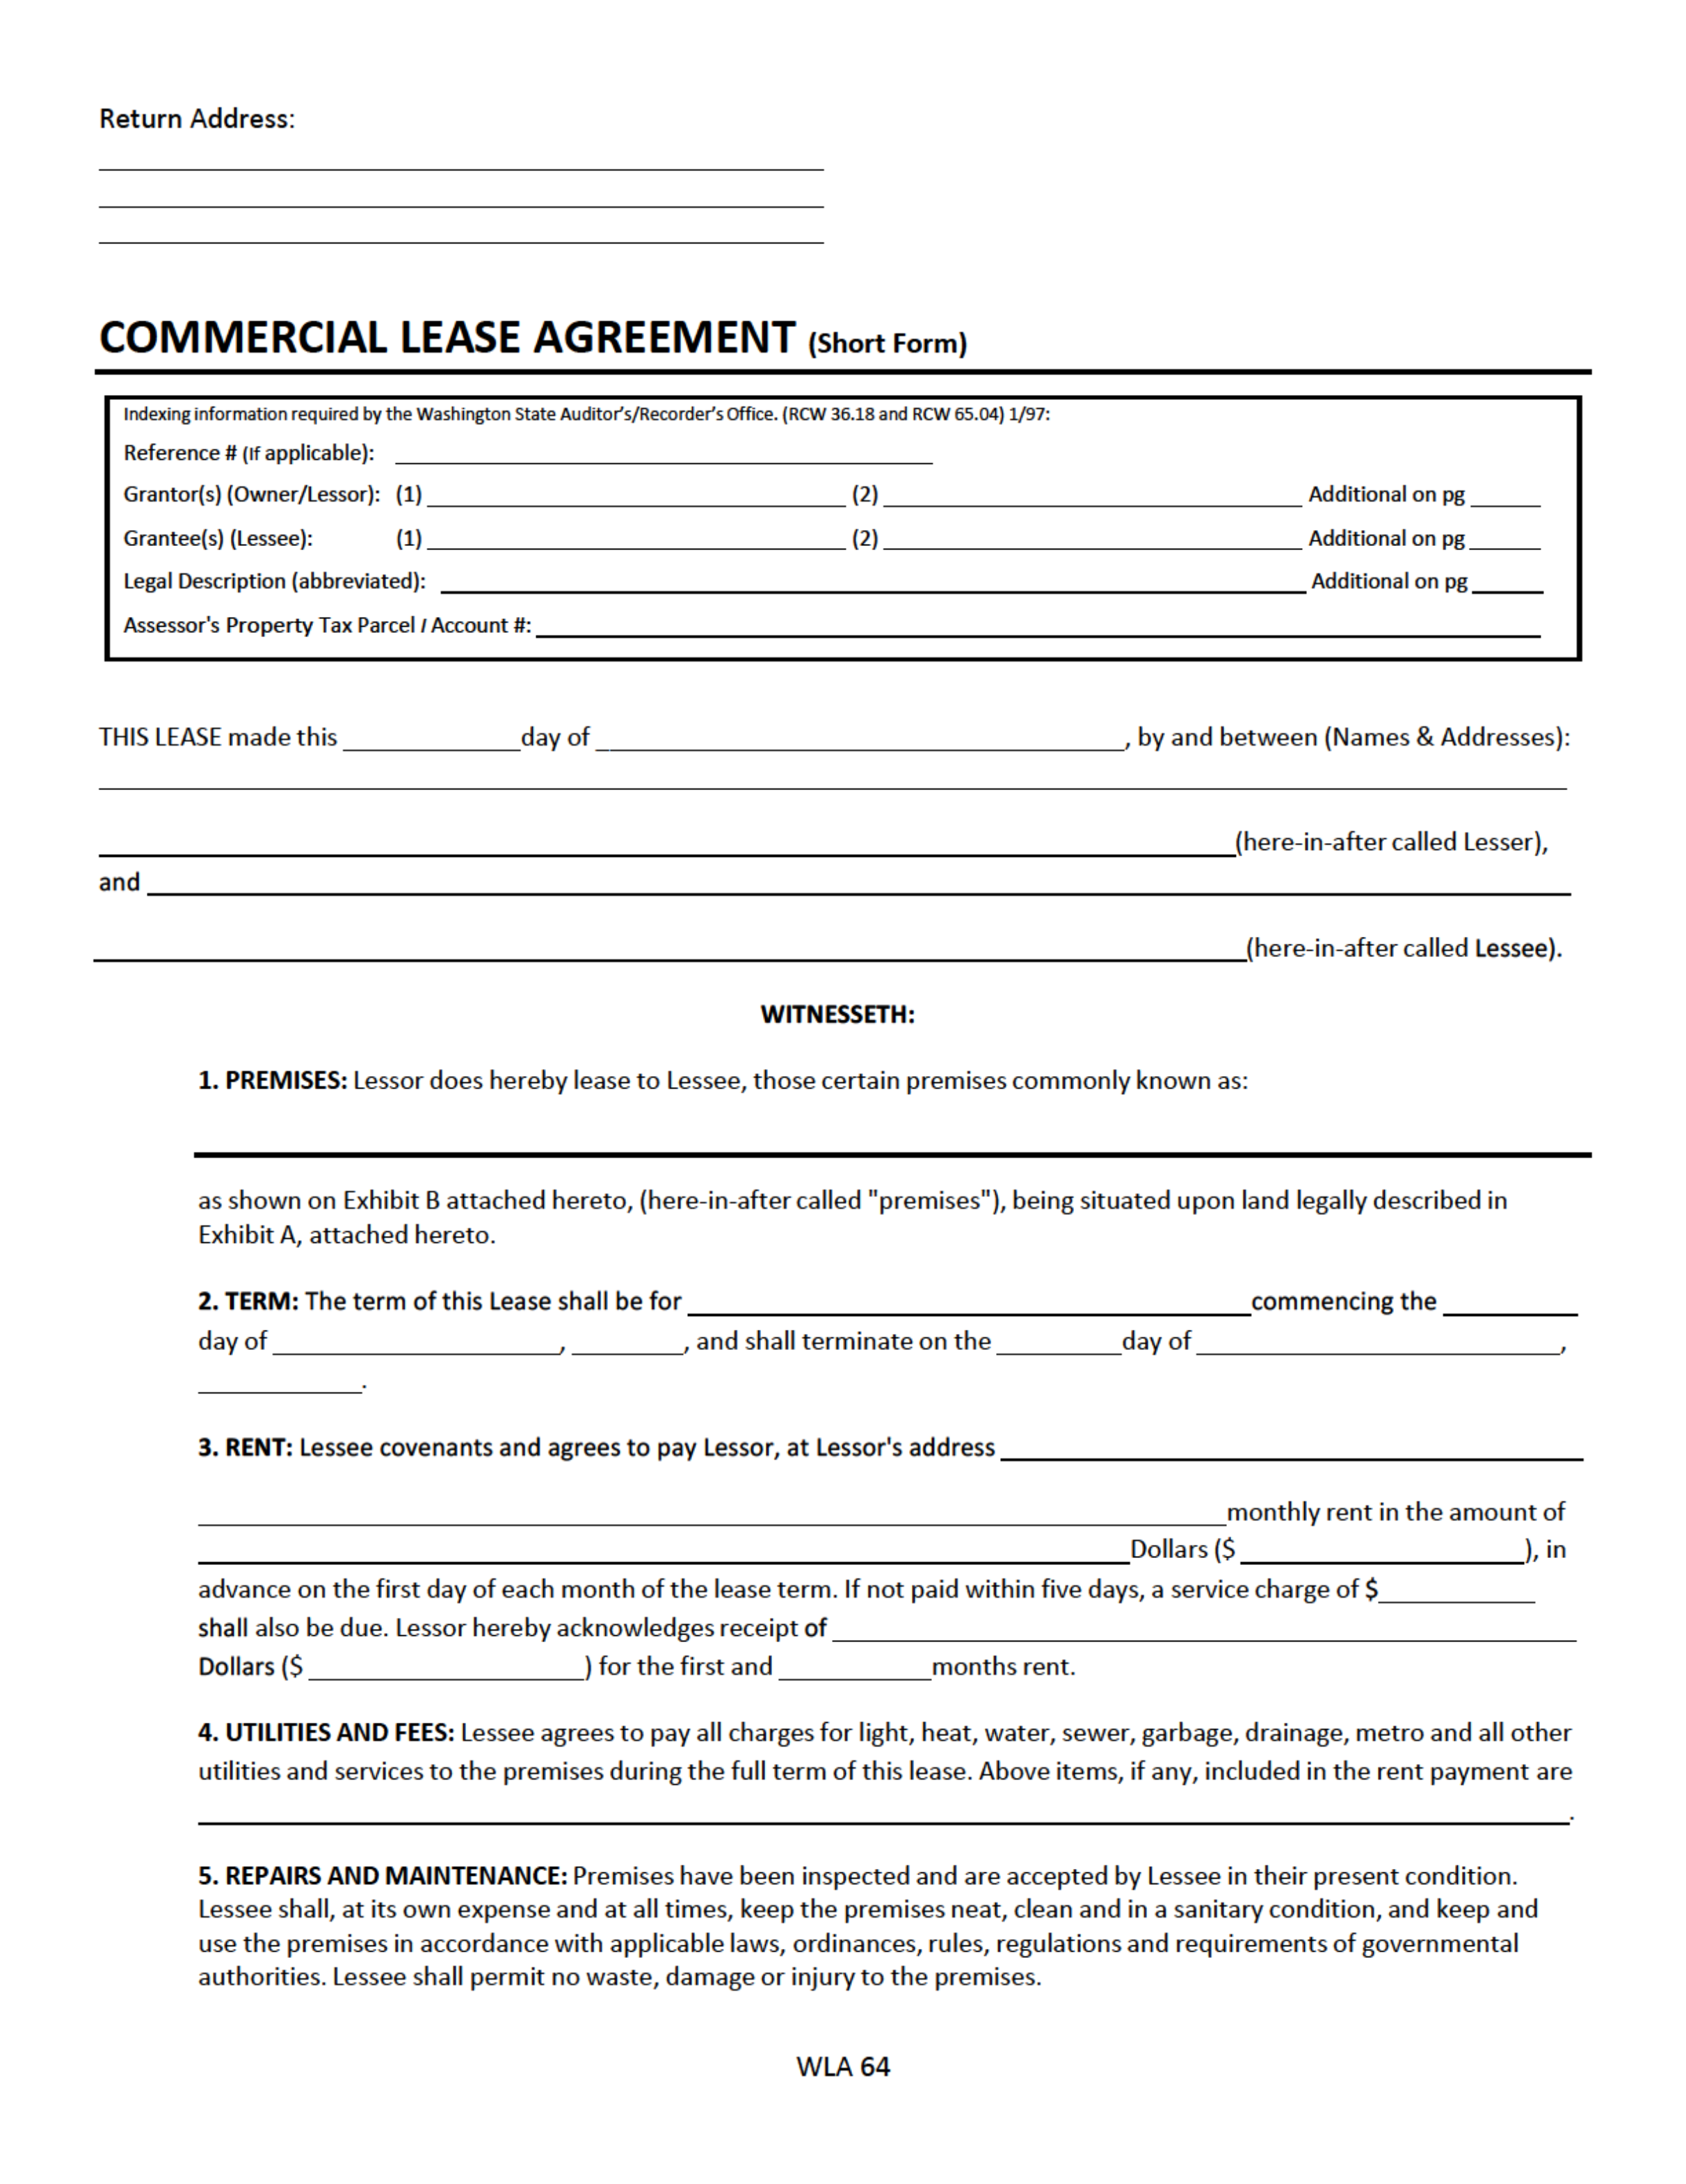 Free Commercial Lease Agreement Template Download Uk